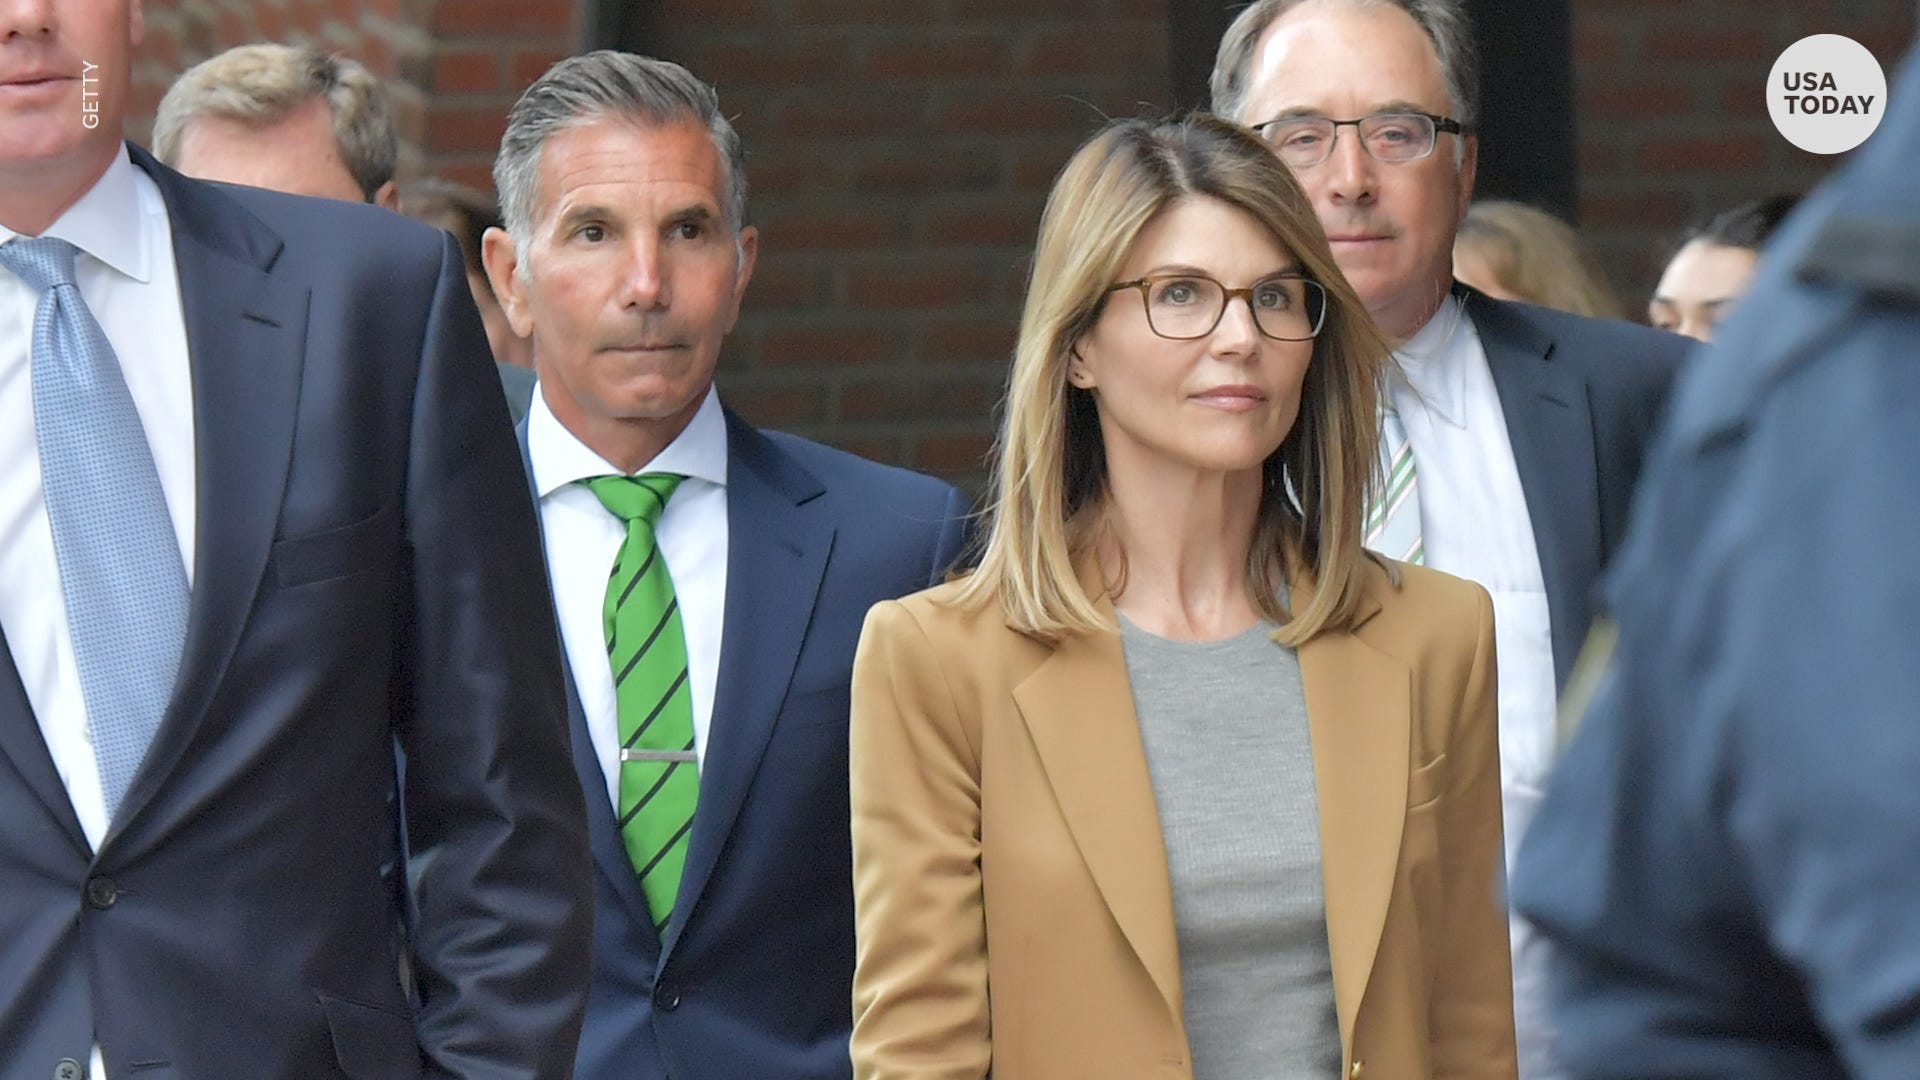 lori-loughlin-and-mossimo-giannulli-reportedly-terrified-about-going-to-jail-soon